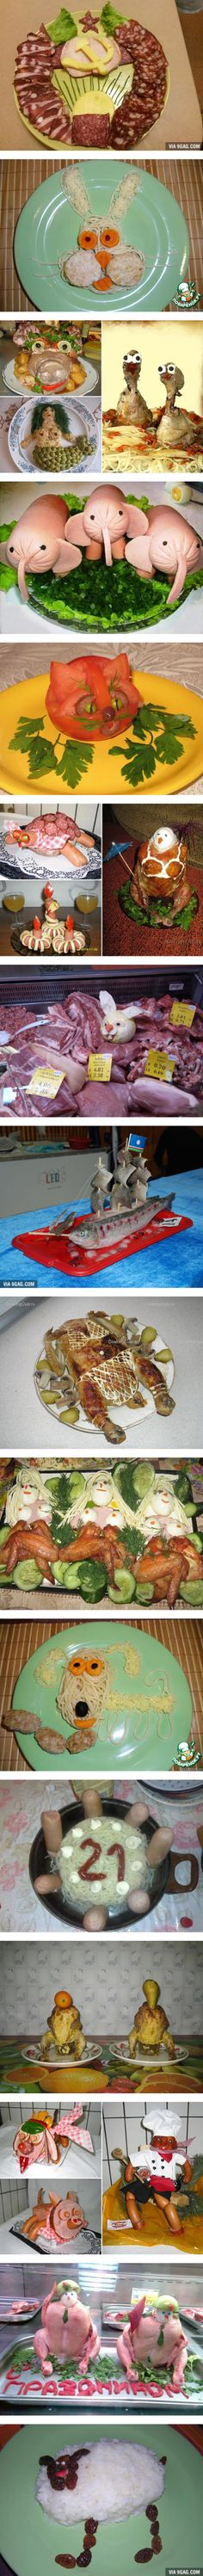 How They Decorate Food in Russia